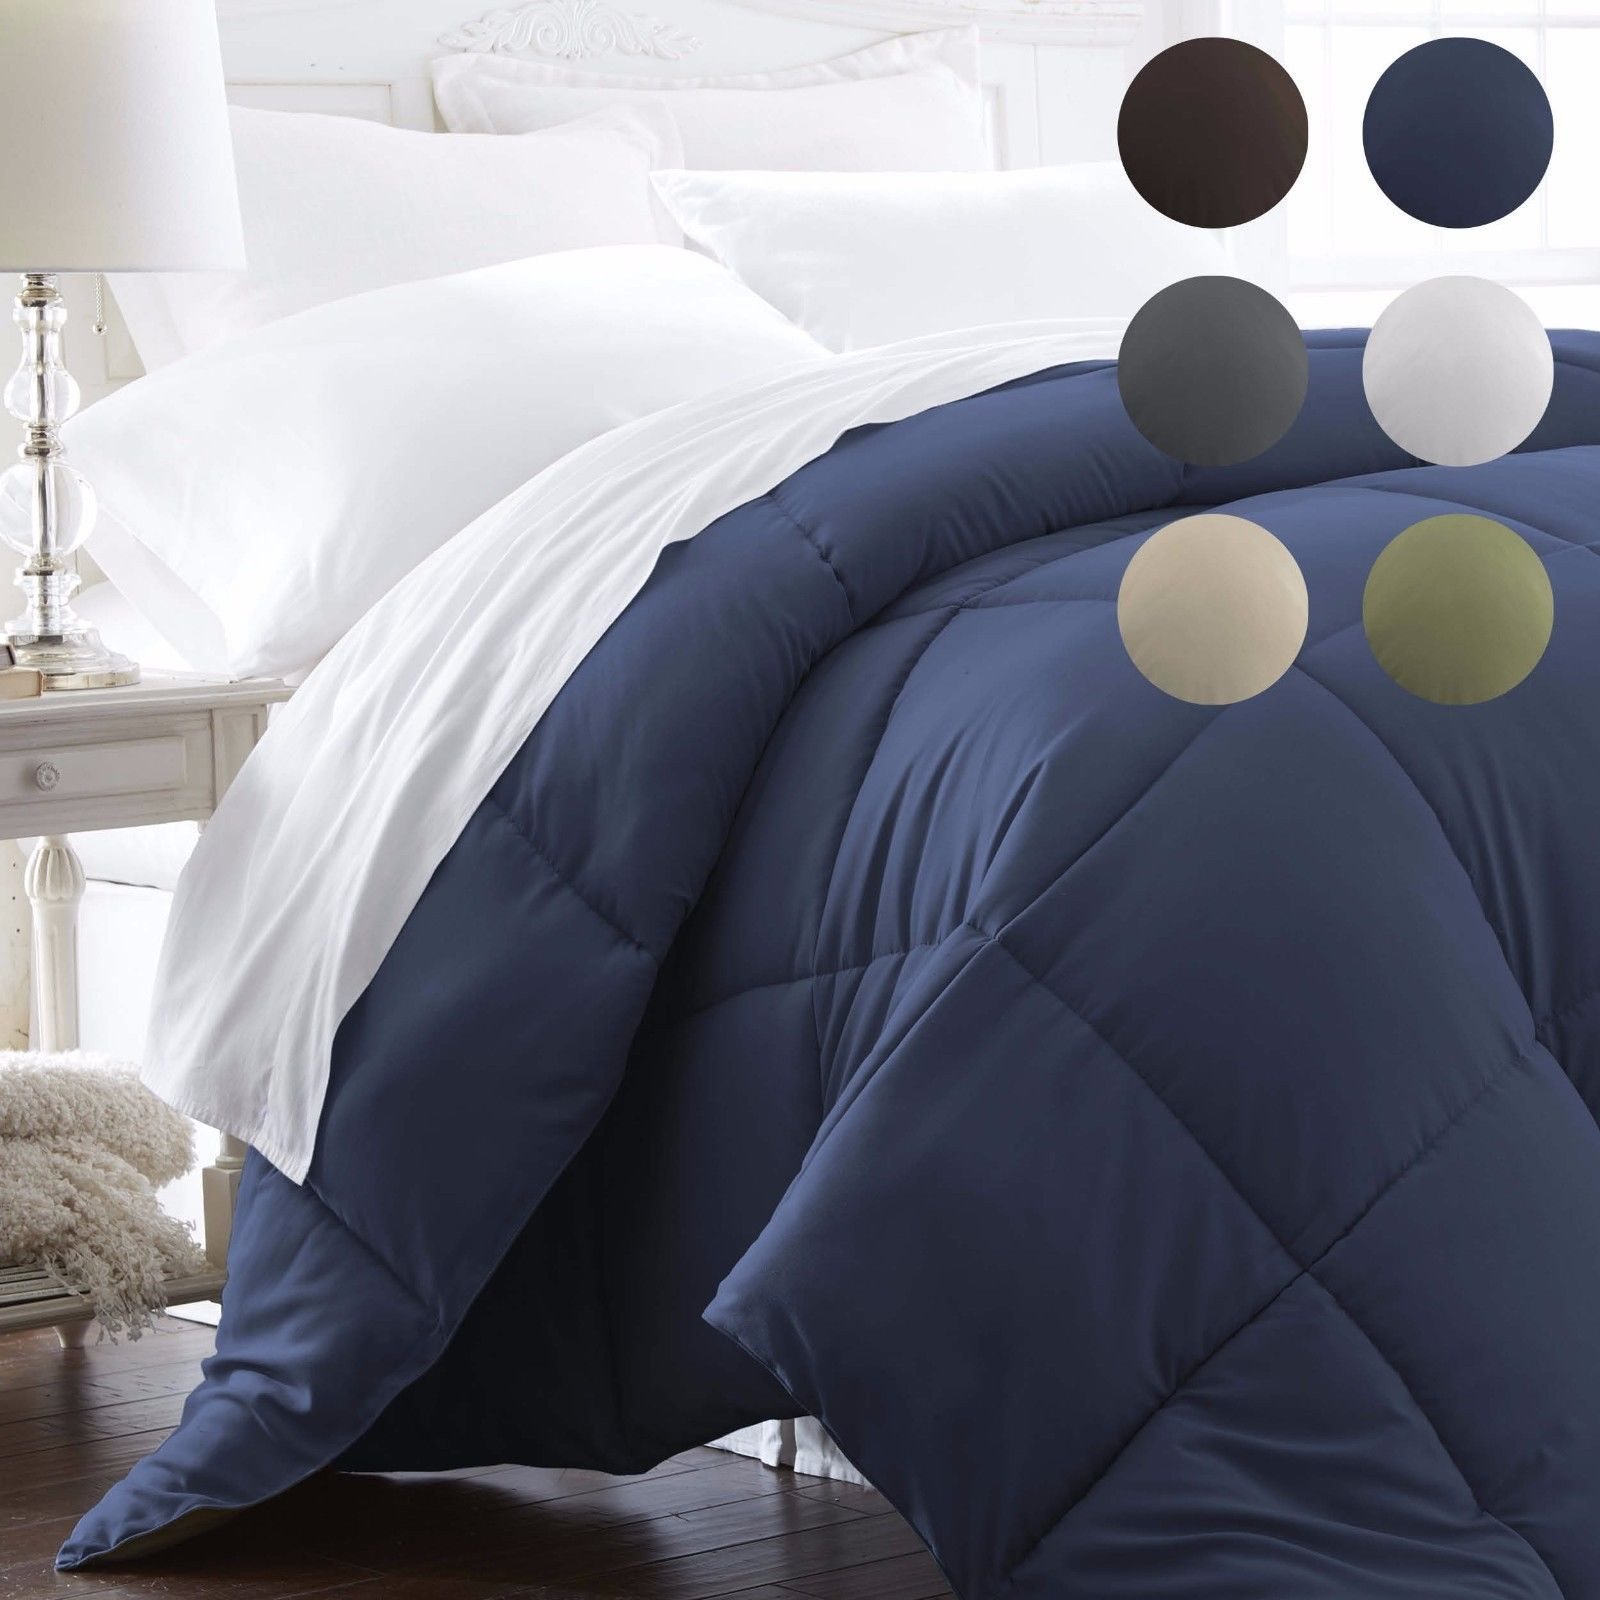 Ultra Soft Premium Goose Down Alternative Comforter 6 Classic Colors Ebay Comforters Sleeping In Bed King Size Duvet